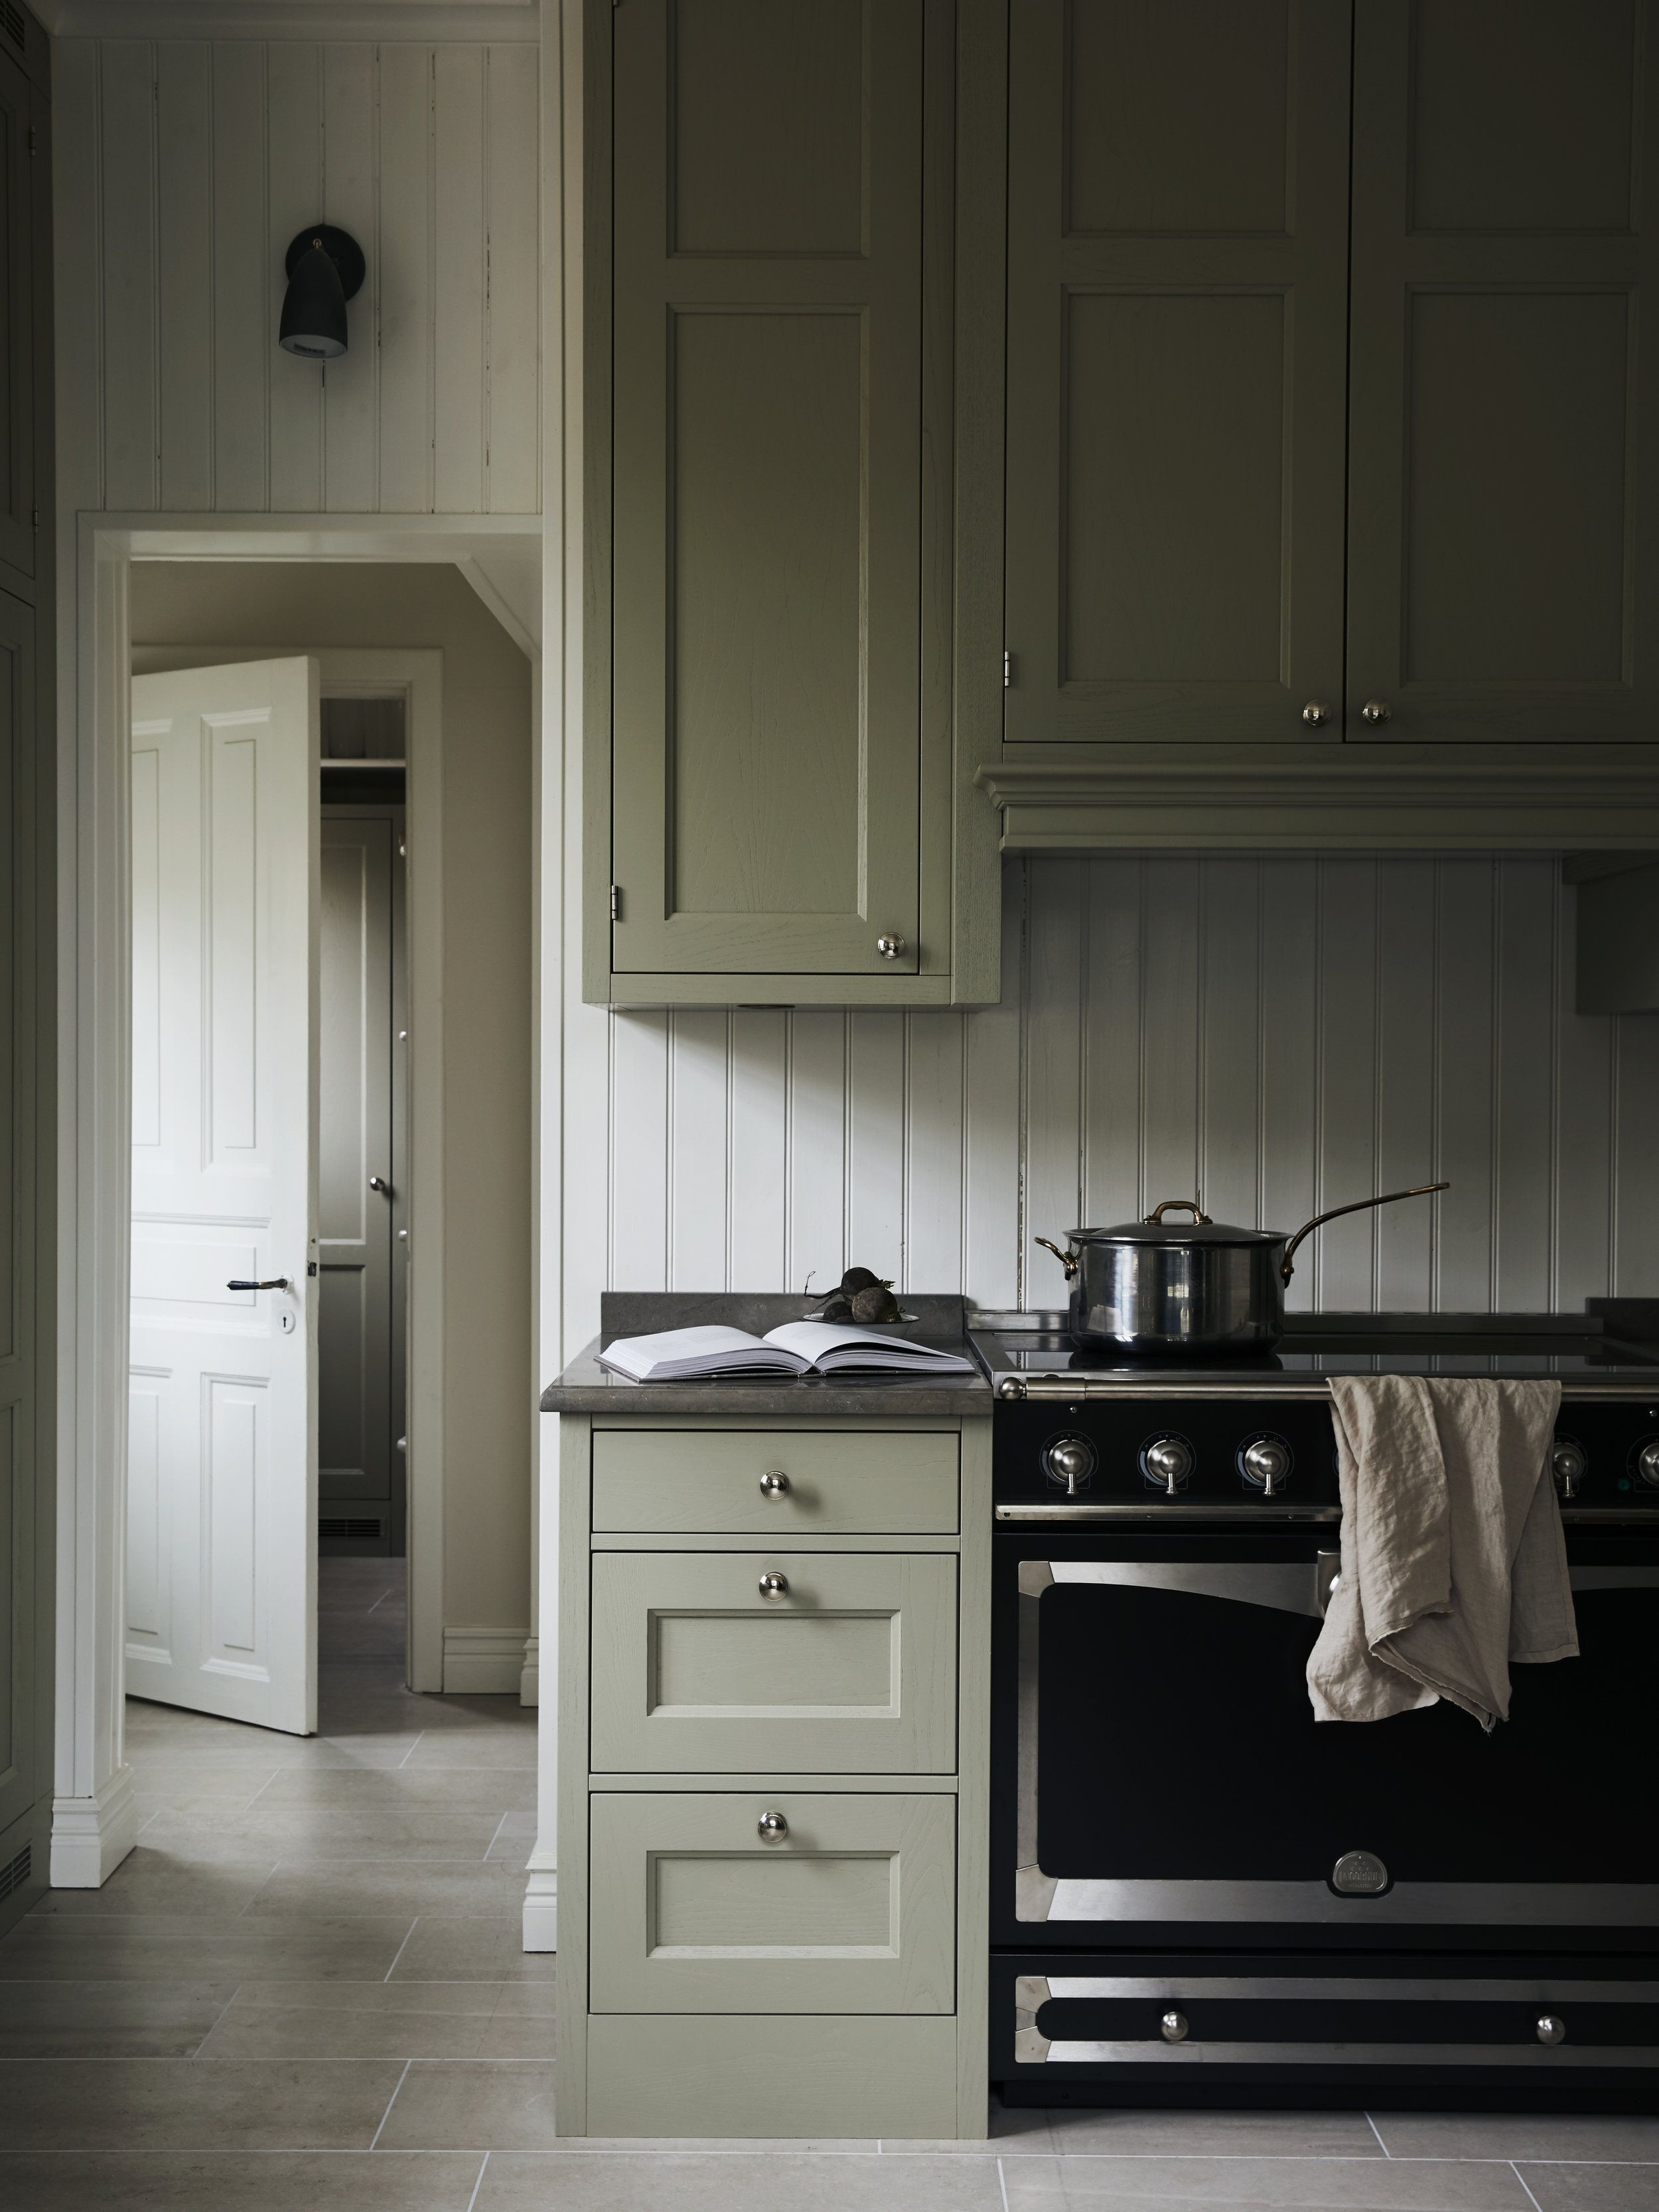 Kitchen And Beyond Kok 06 Jpg Love The Light Placement Above The Doorway In Kitchen Home Decor Kitchen Kitchen Decor Kitchen Styling